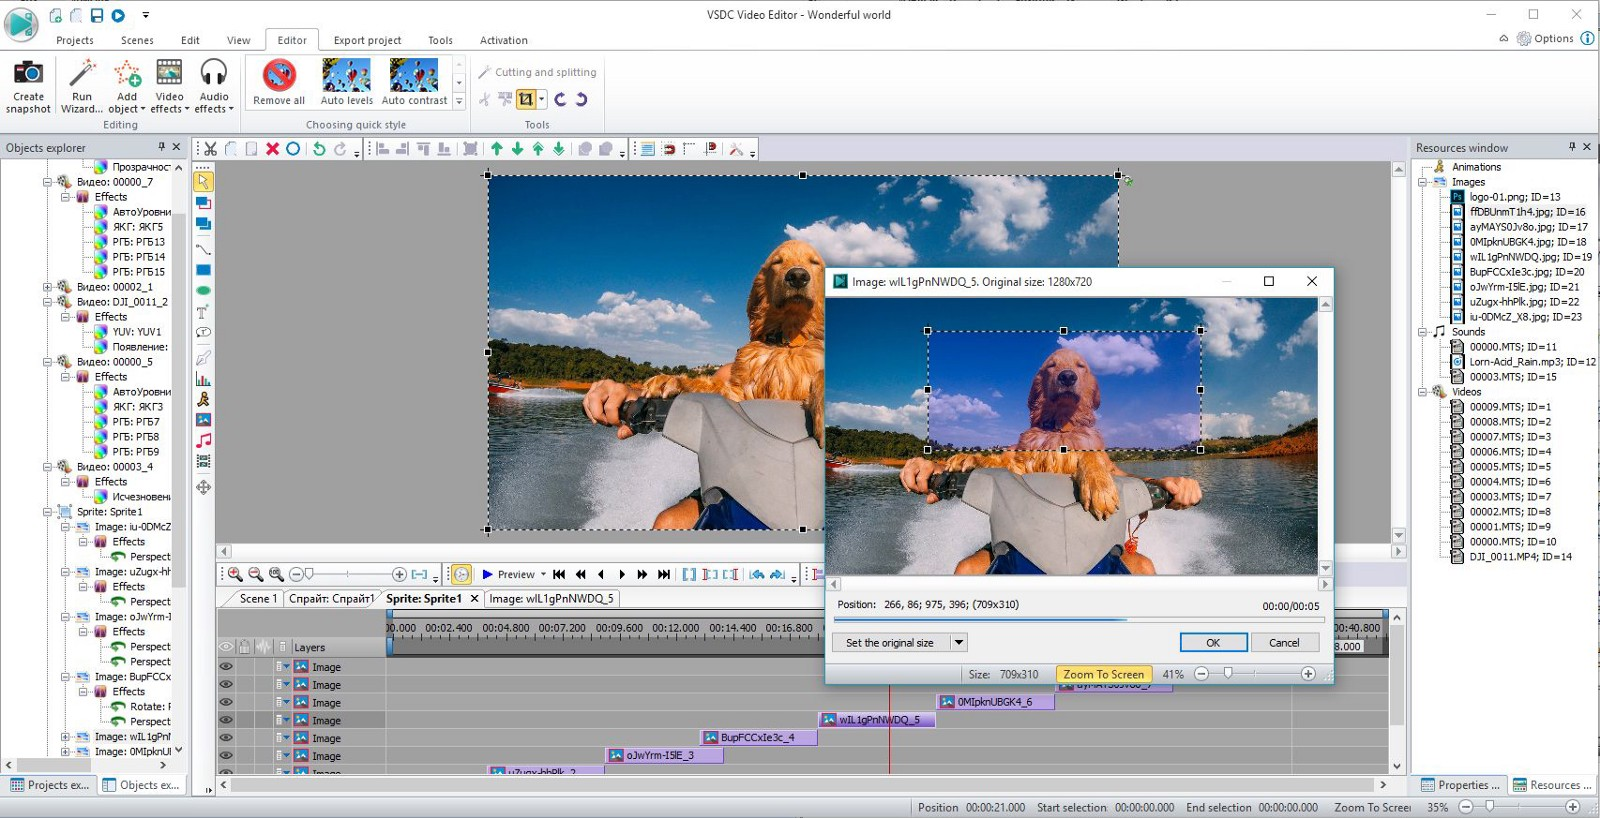 The Best Video Editing Software for 2019